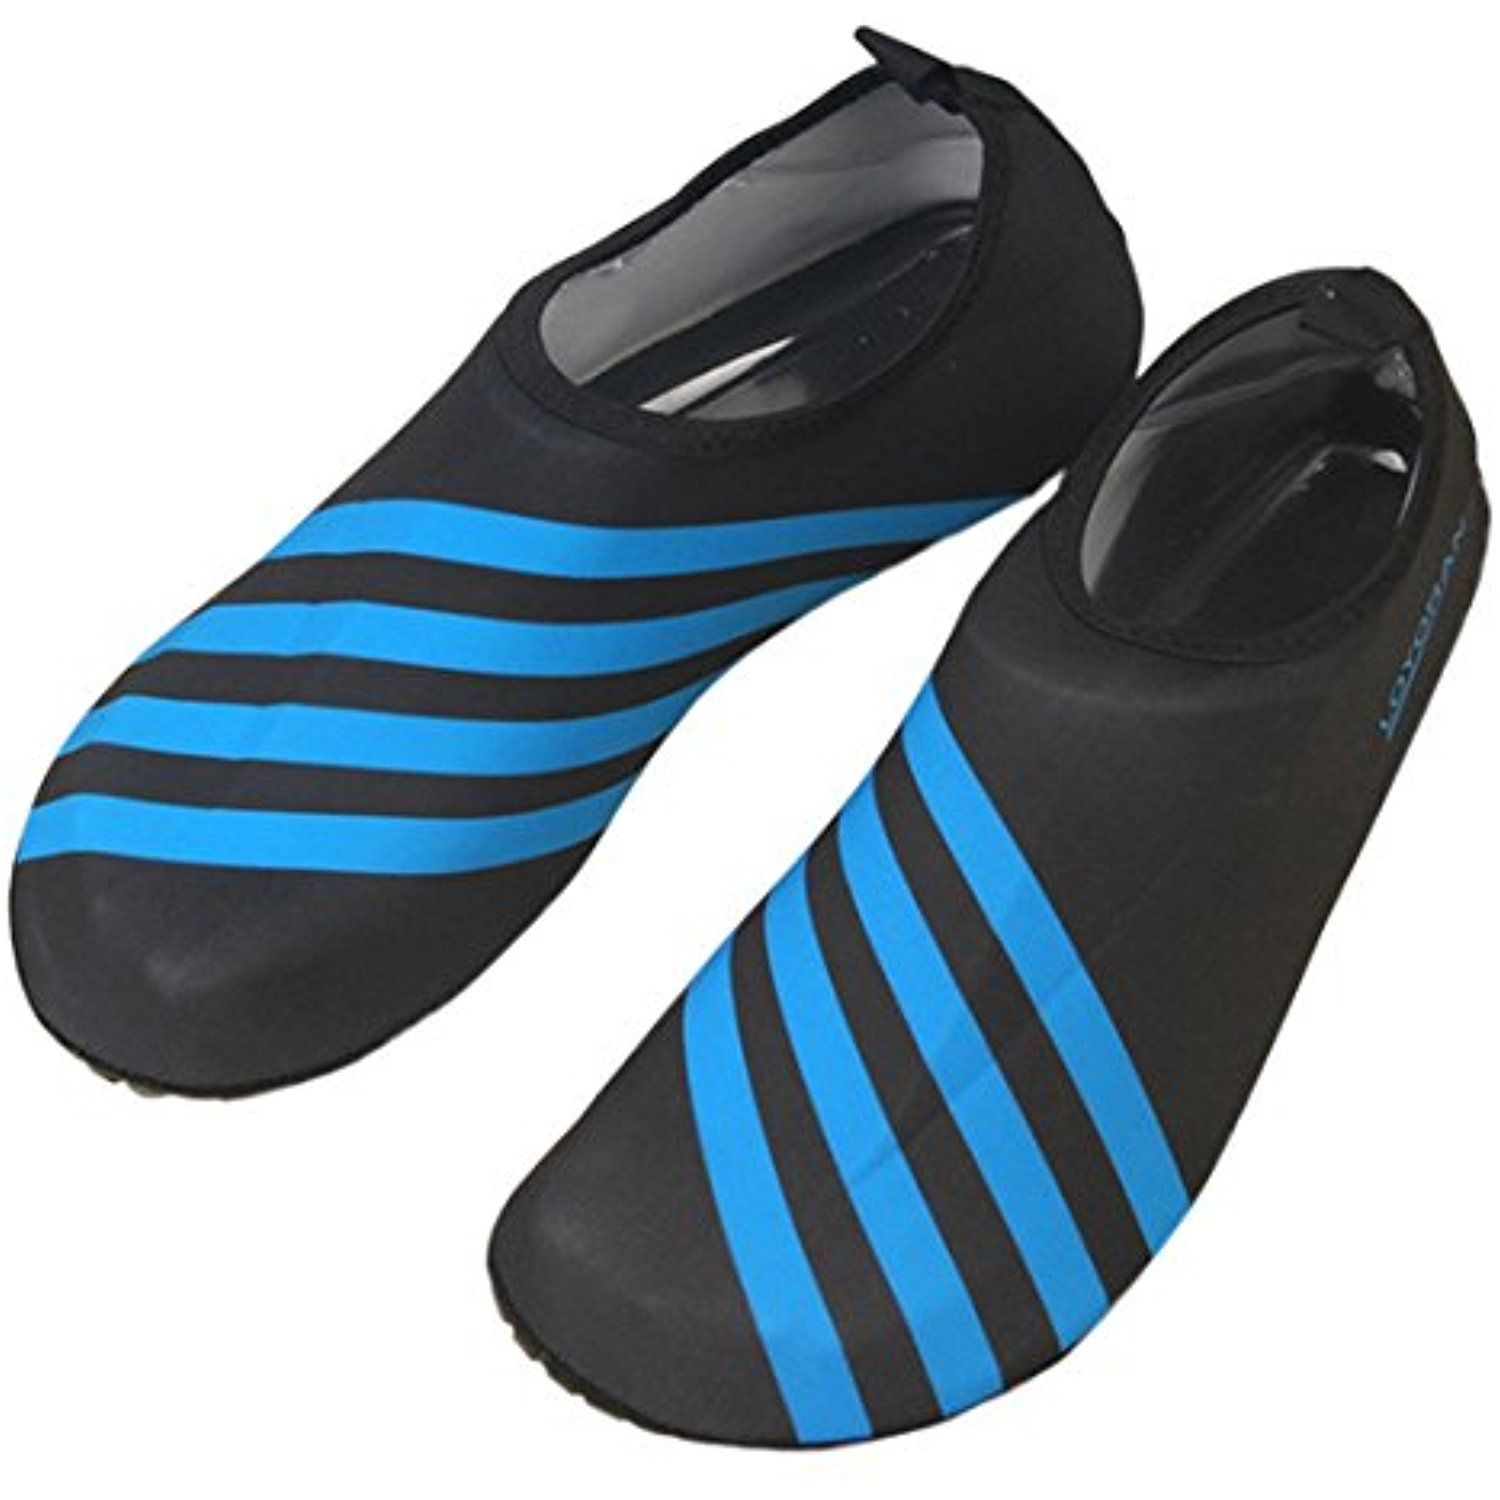 Men's Women' Solid Color Barefoot Water Skin Shoes For Beach Swim Surf Yoga Exercise